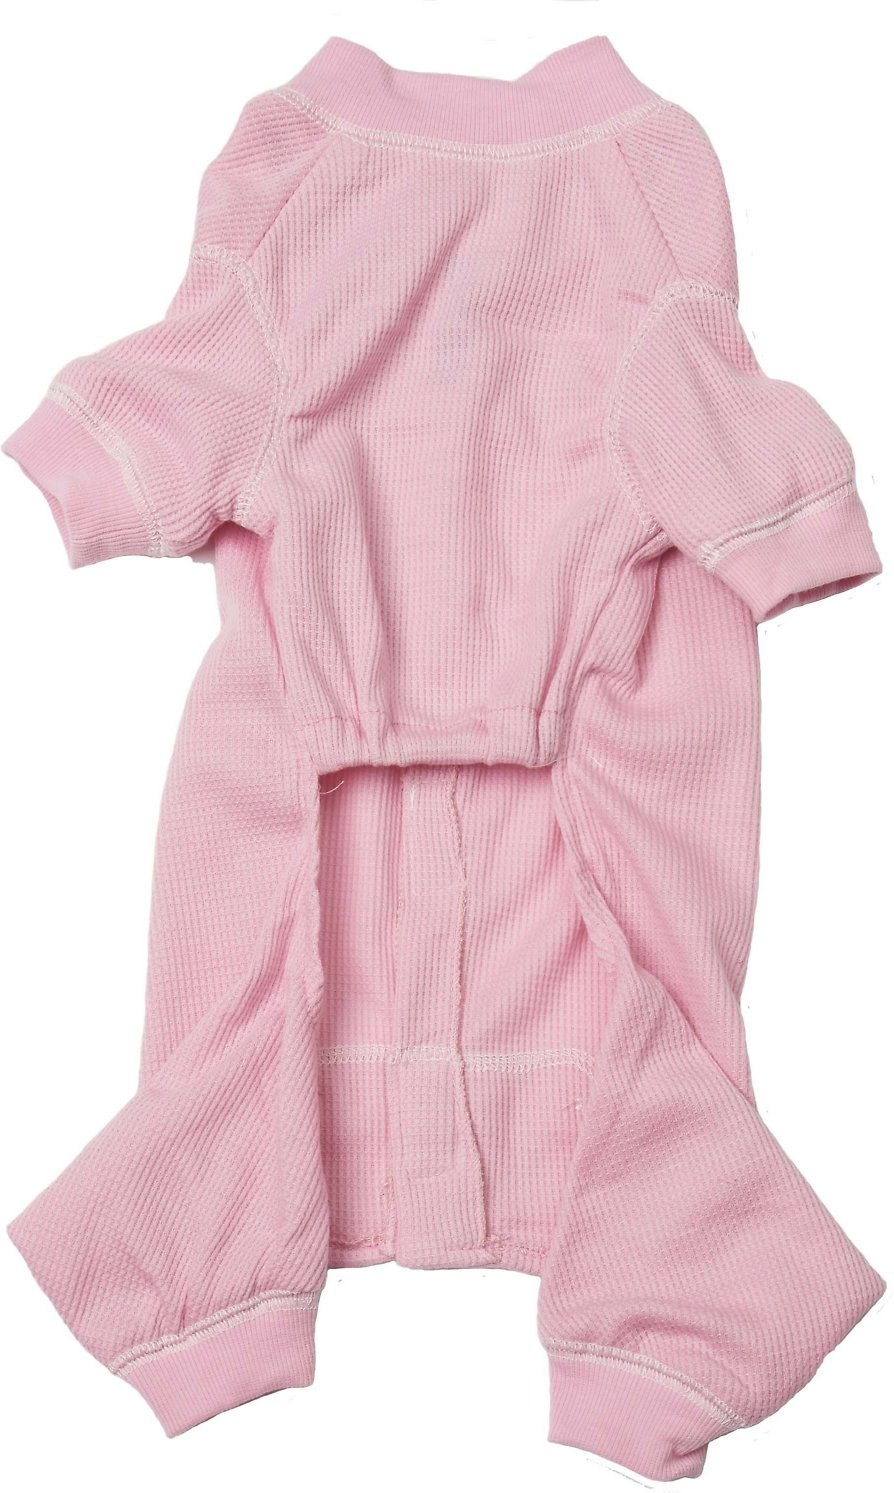 Petrageous designs cozy thermal dog pjs pink x small chewy video nvjuhfo Image collections